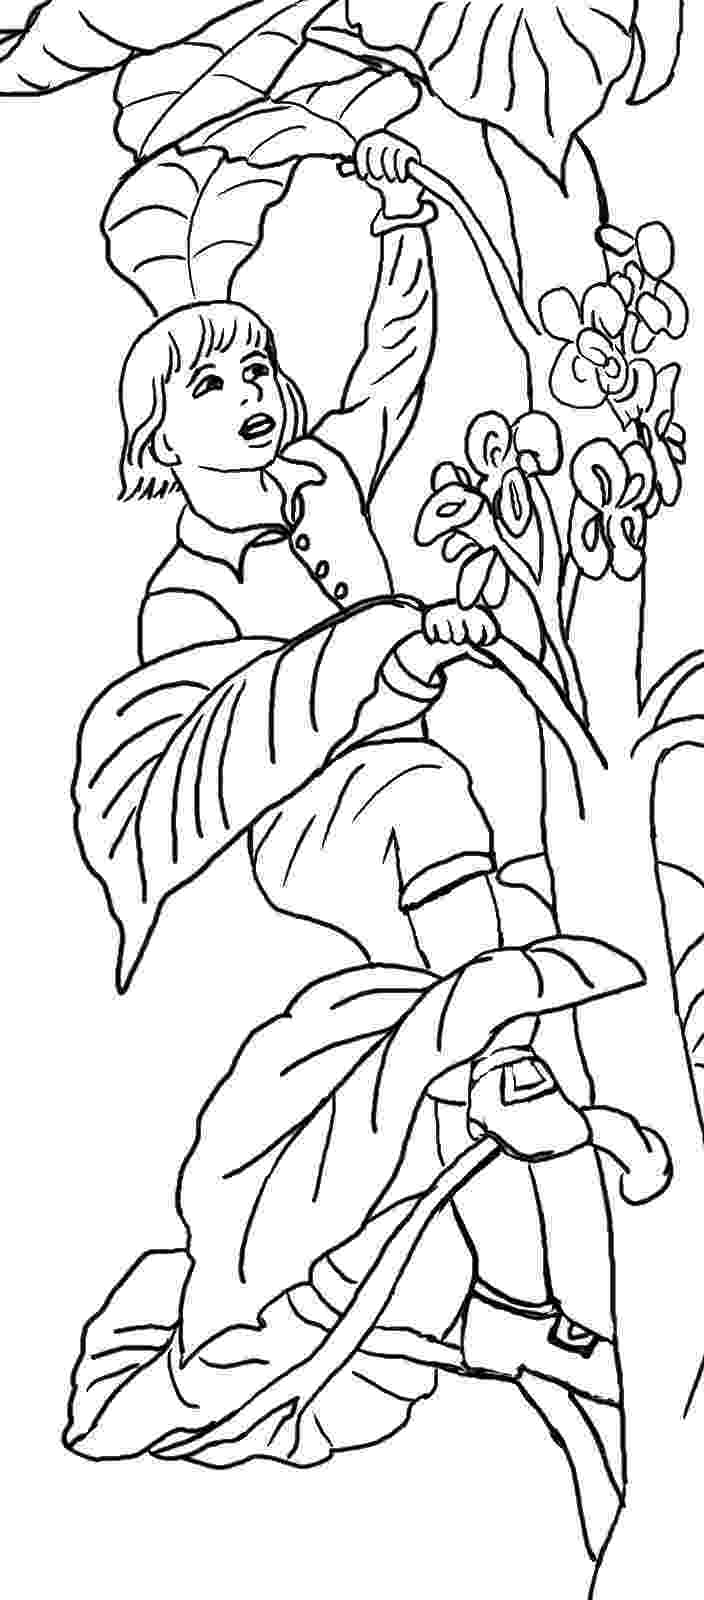 beanstalk coloring page jack and the beanstalk printable jack the beanstalk beanstalk coloring page